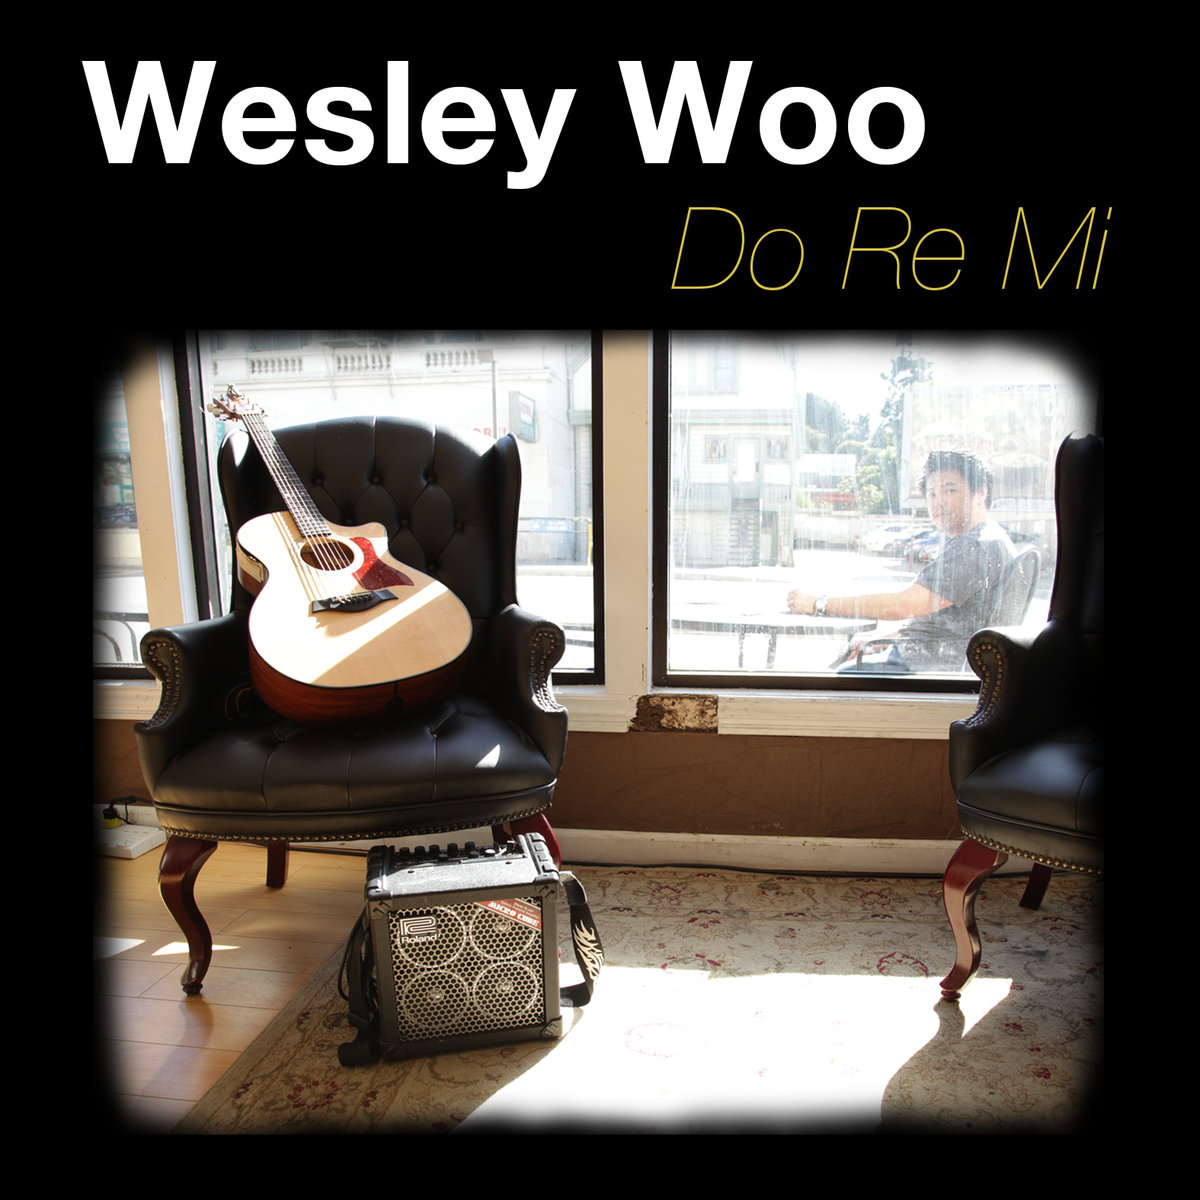 Wesley Woo - Fall Again @ 'Do Re Mi' album (11th ave records, 11th avenue records)